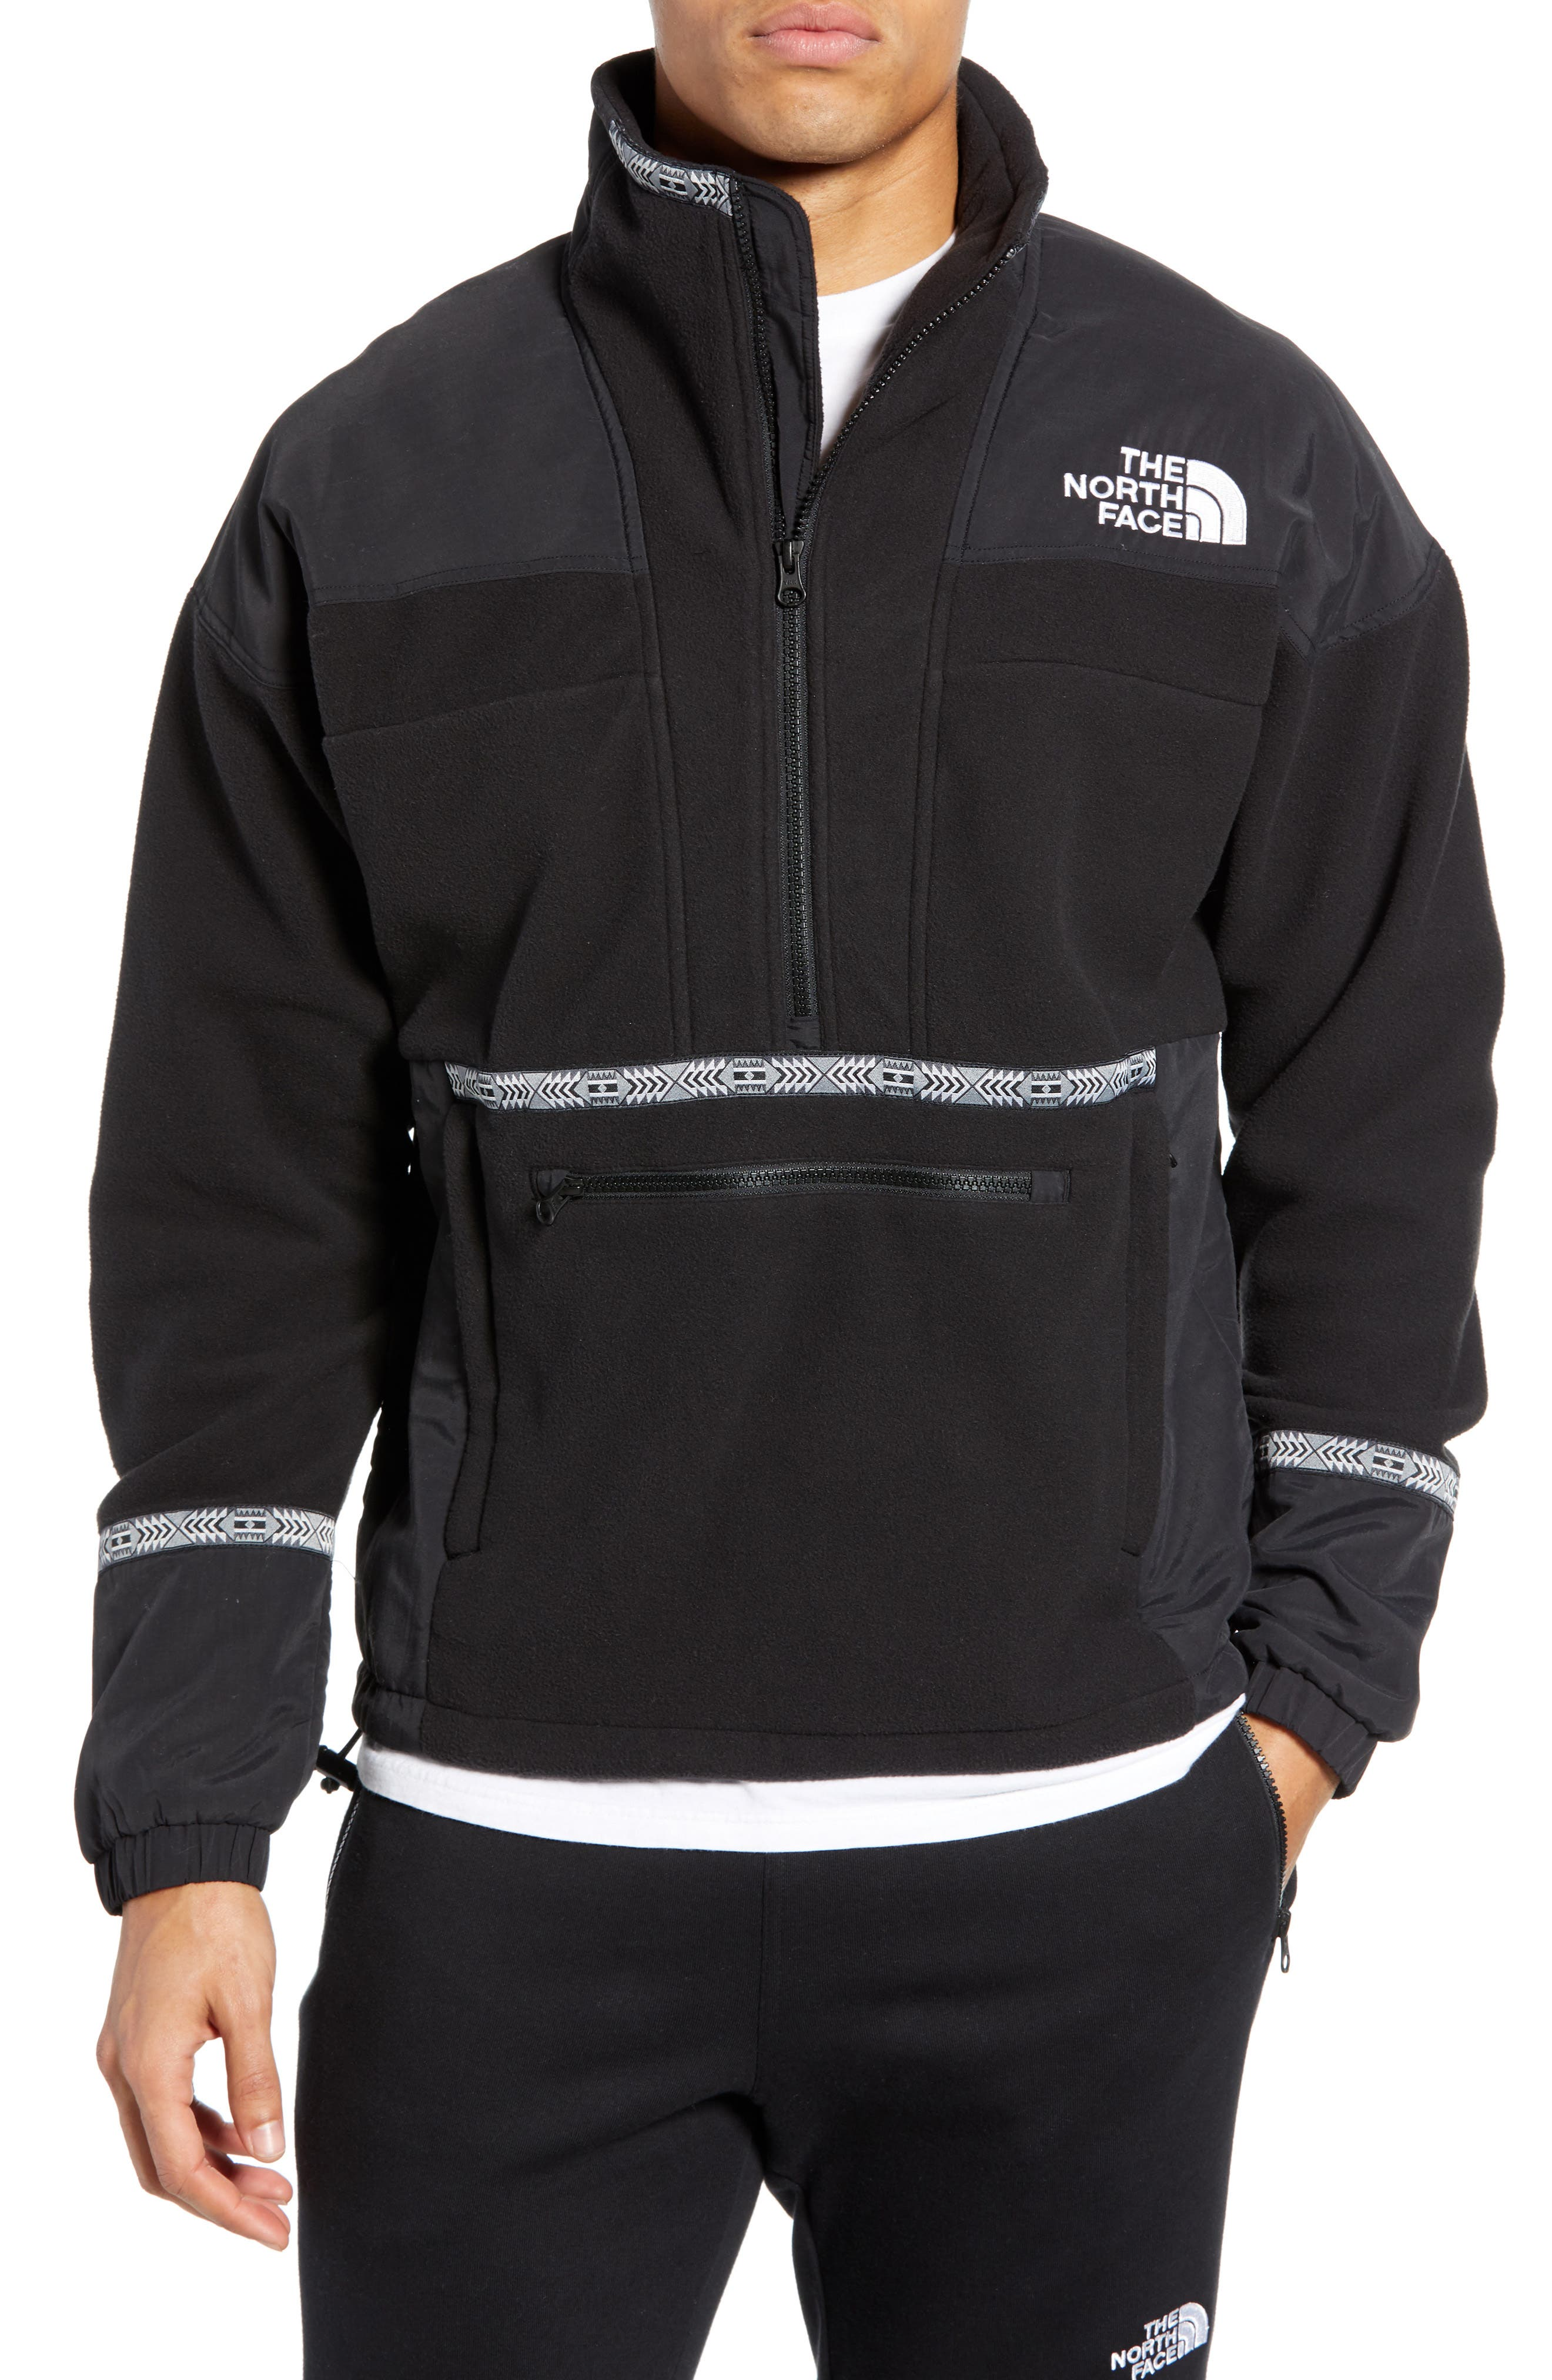 THE NORTH FACE 1992 Rage Collection Fleece Anorak, Main, color, 001